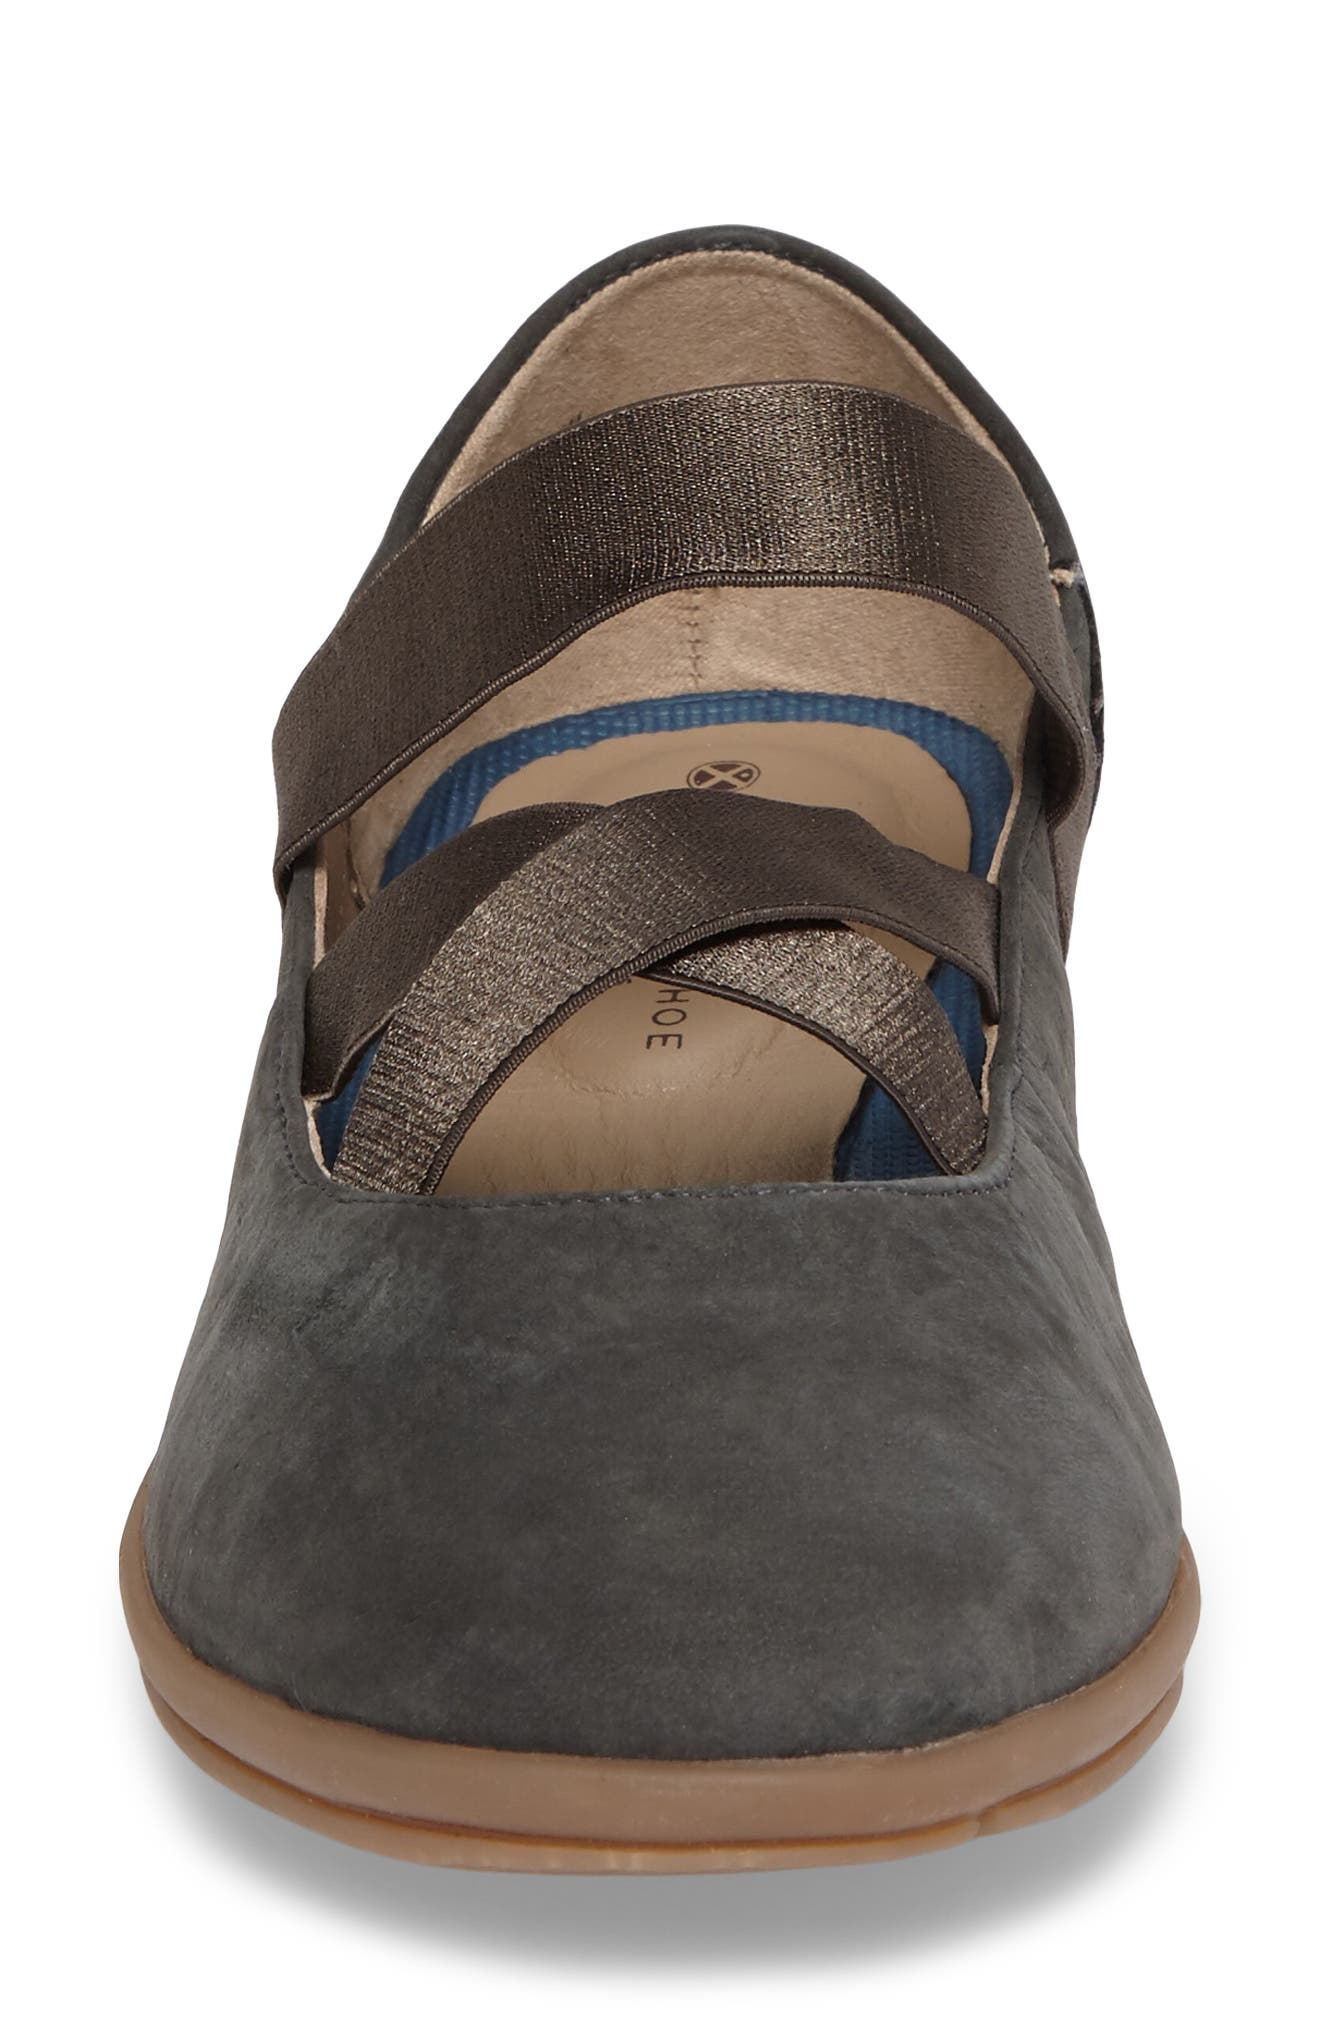 Meree Madrine Cross Strap Flat,                             Alternate thumbnail 19, color,